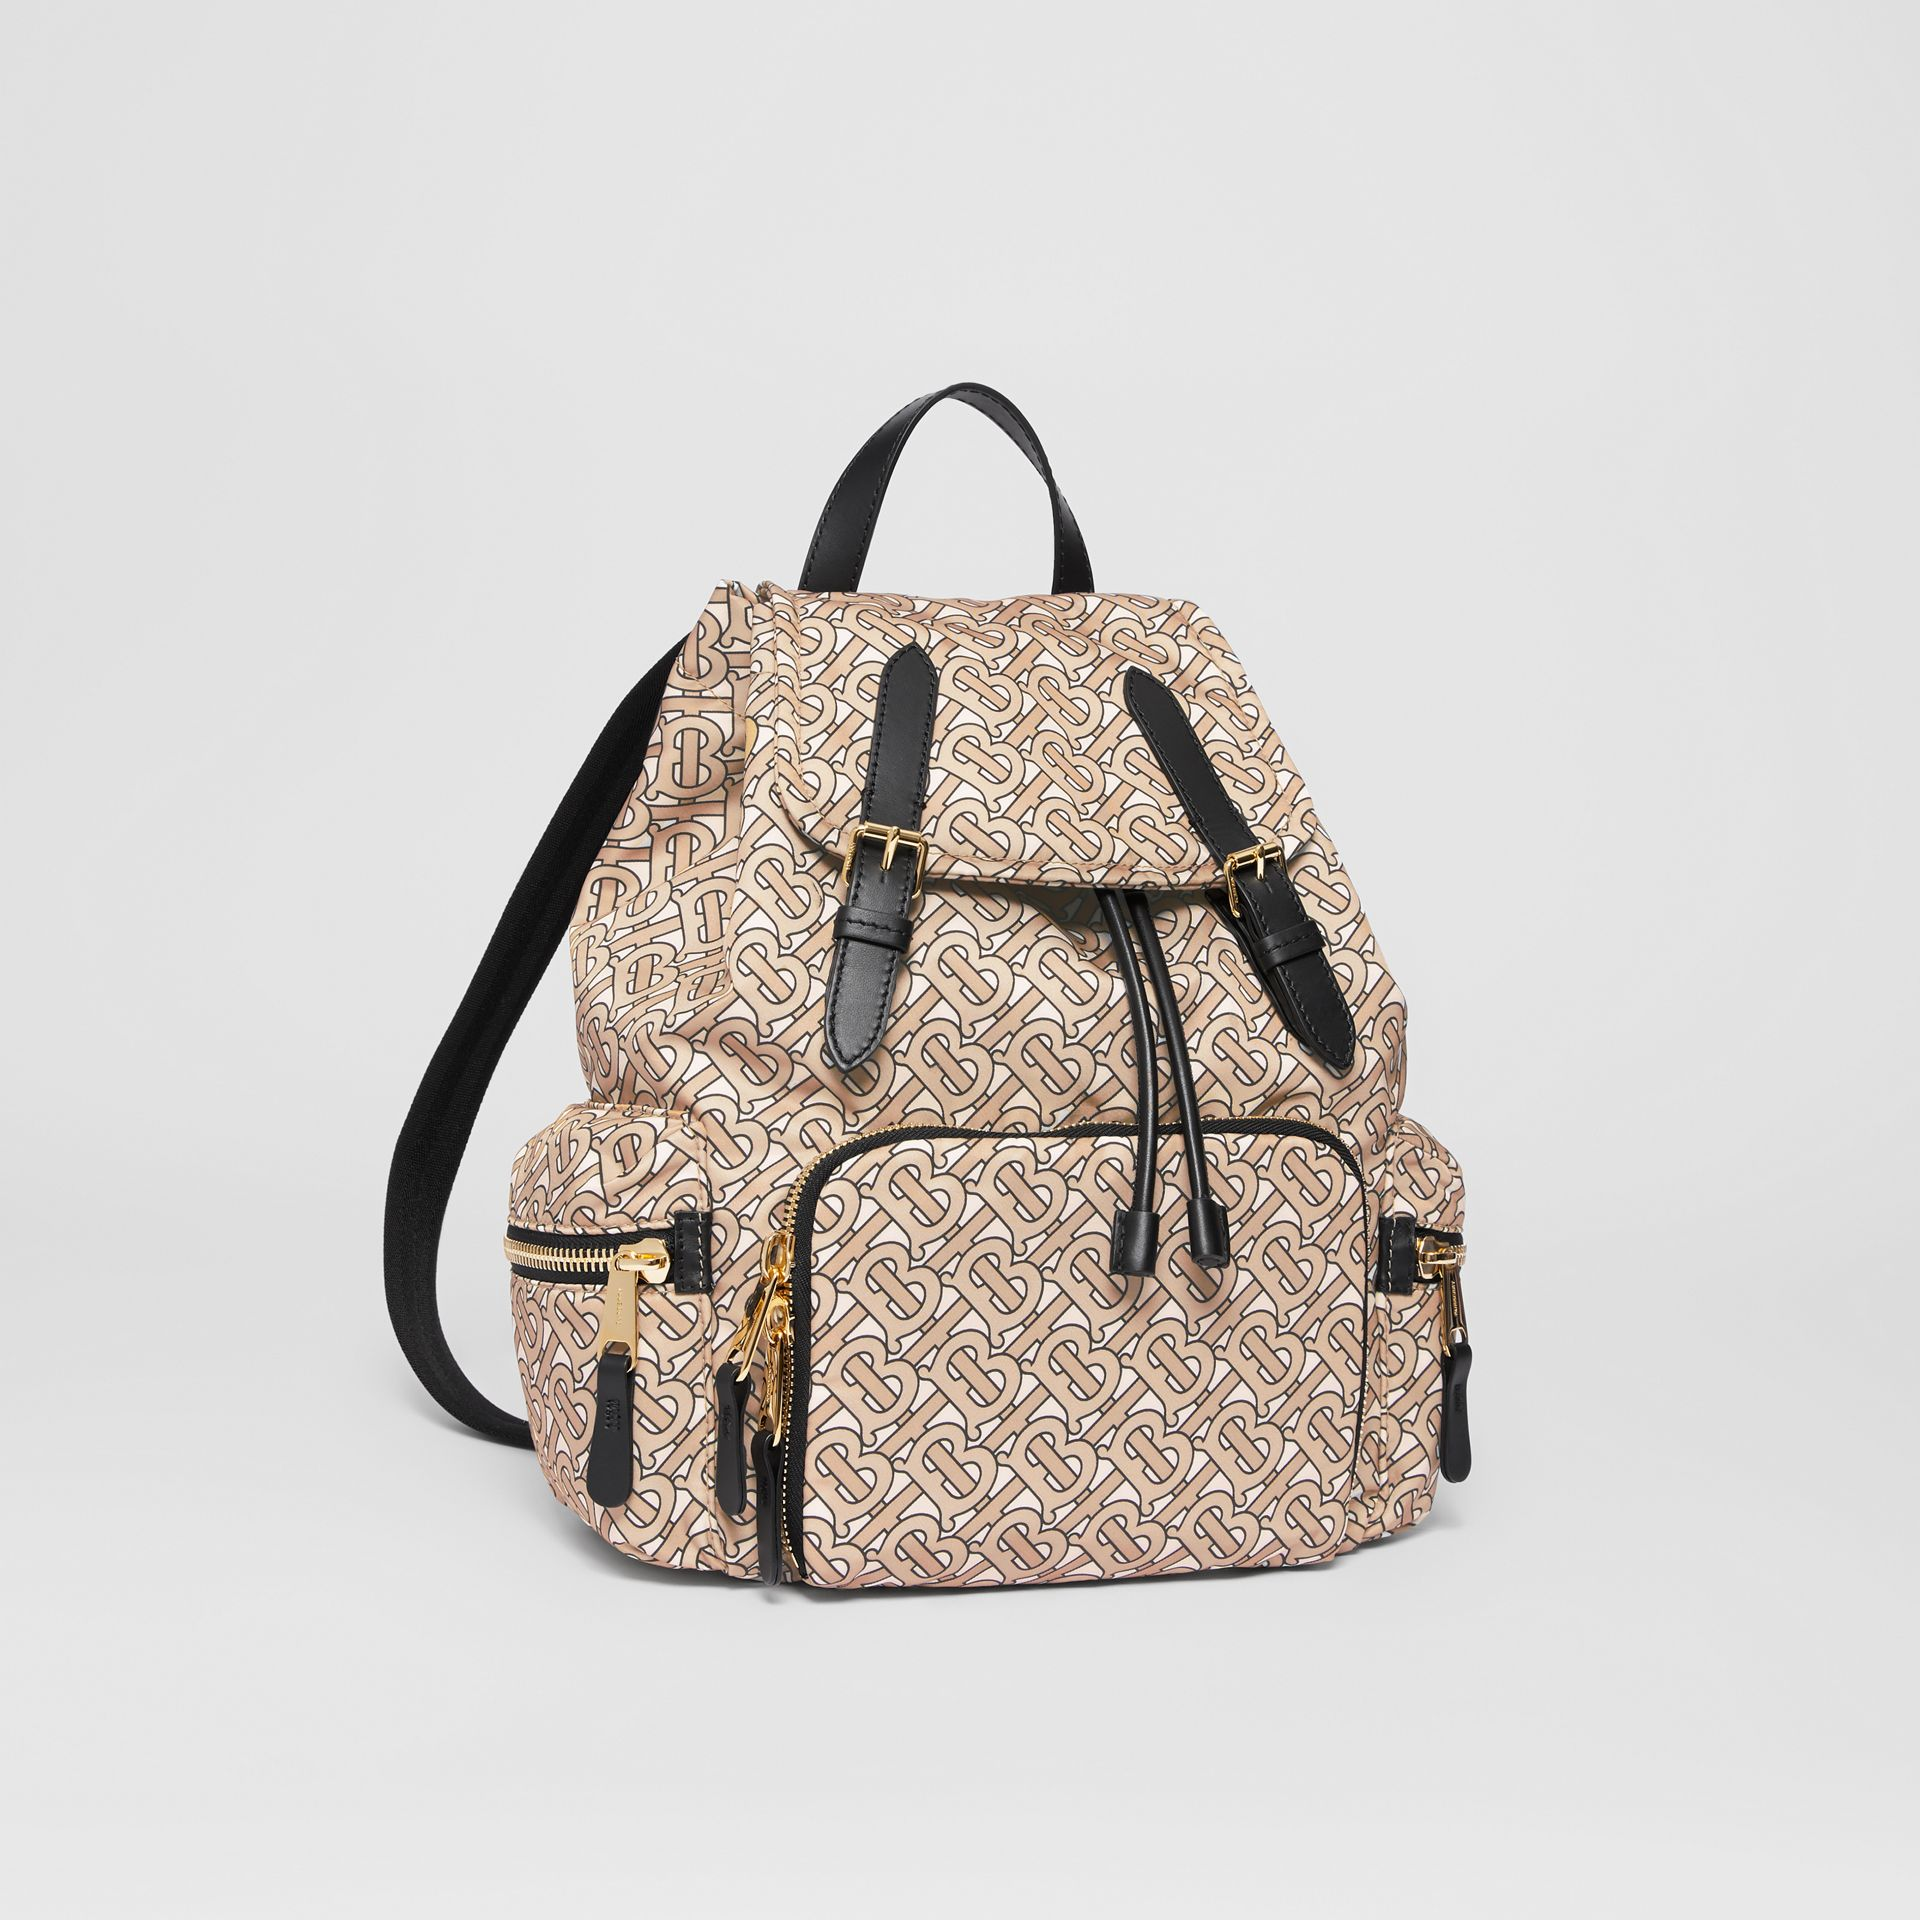 Sac The Rucksack moyen en nylon Monogram (Beige) - Femme | Burberry Canada - photo de la galerie 4